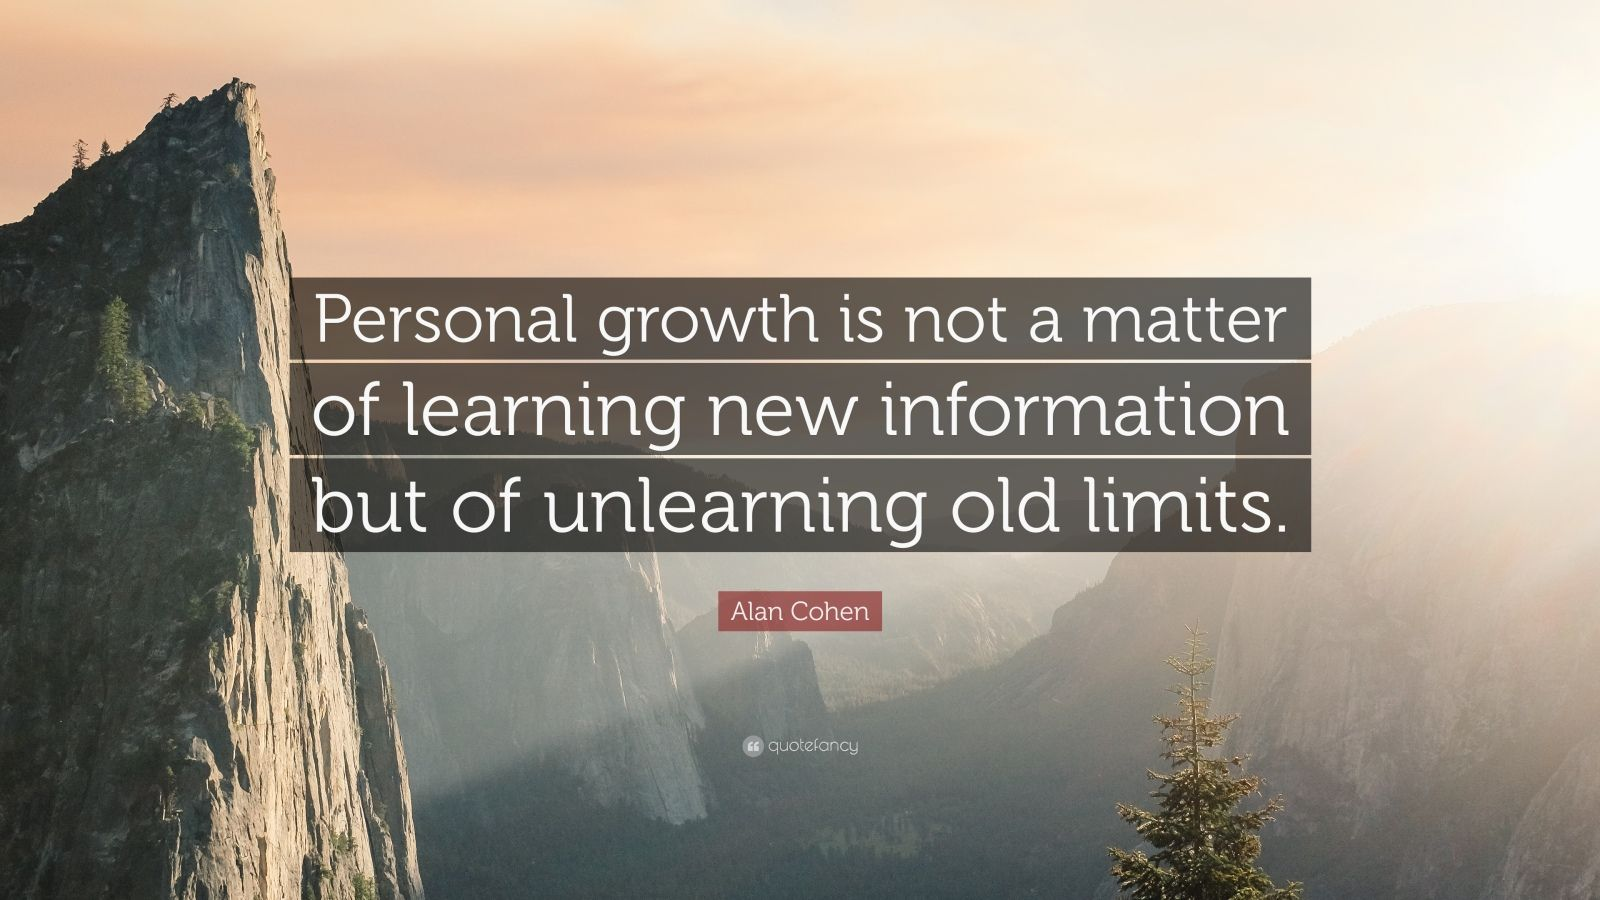 growth personal quotes learning unlearning quote matter cohen alan limits wallpapers quotefancy coexist comfort